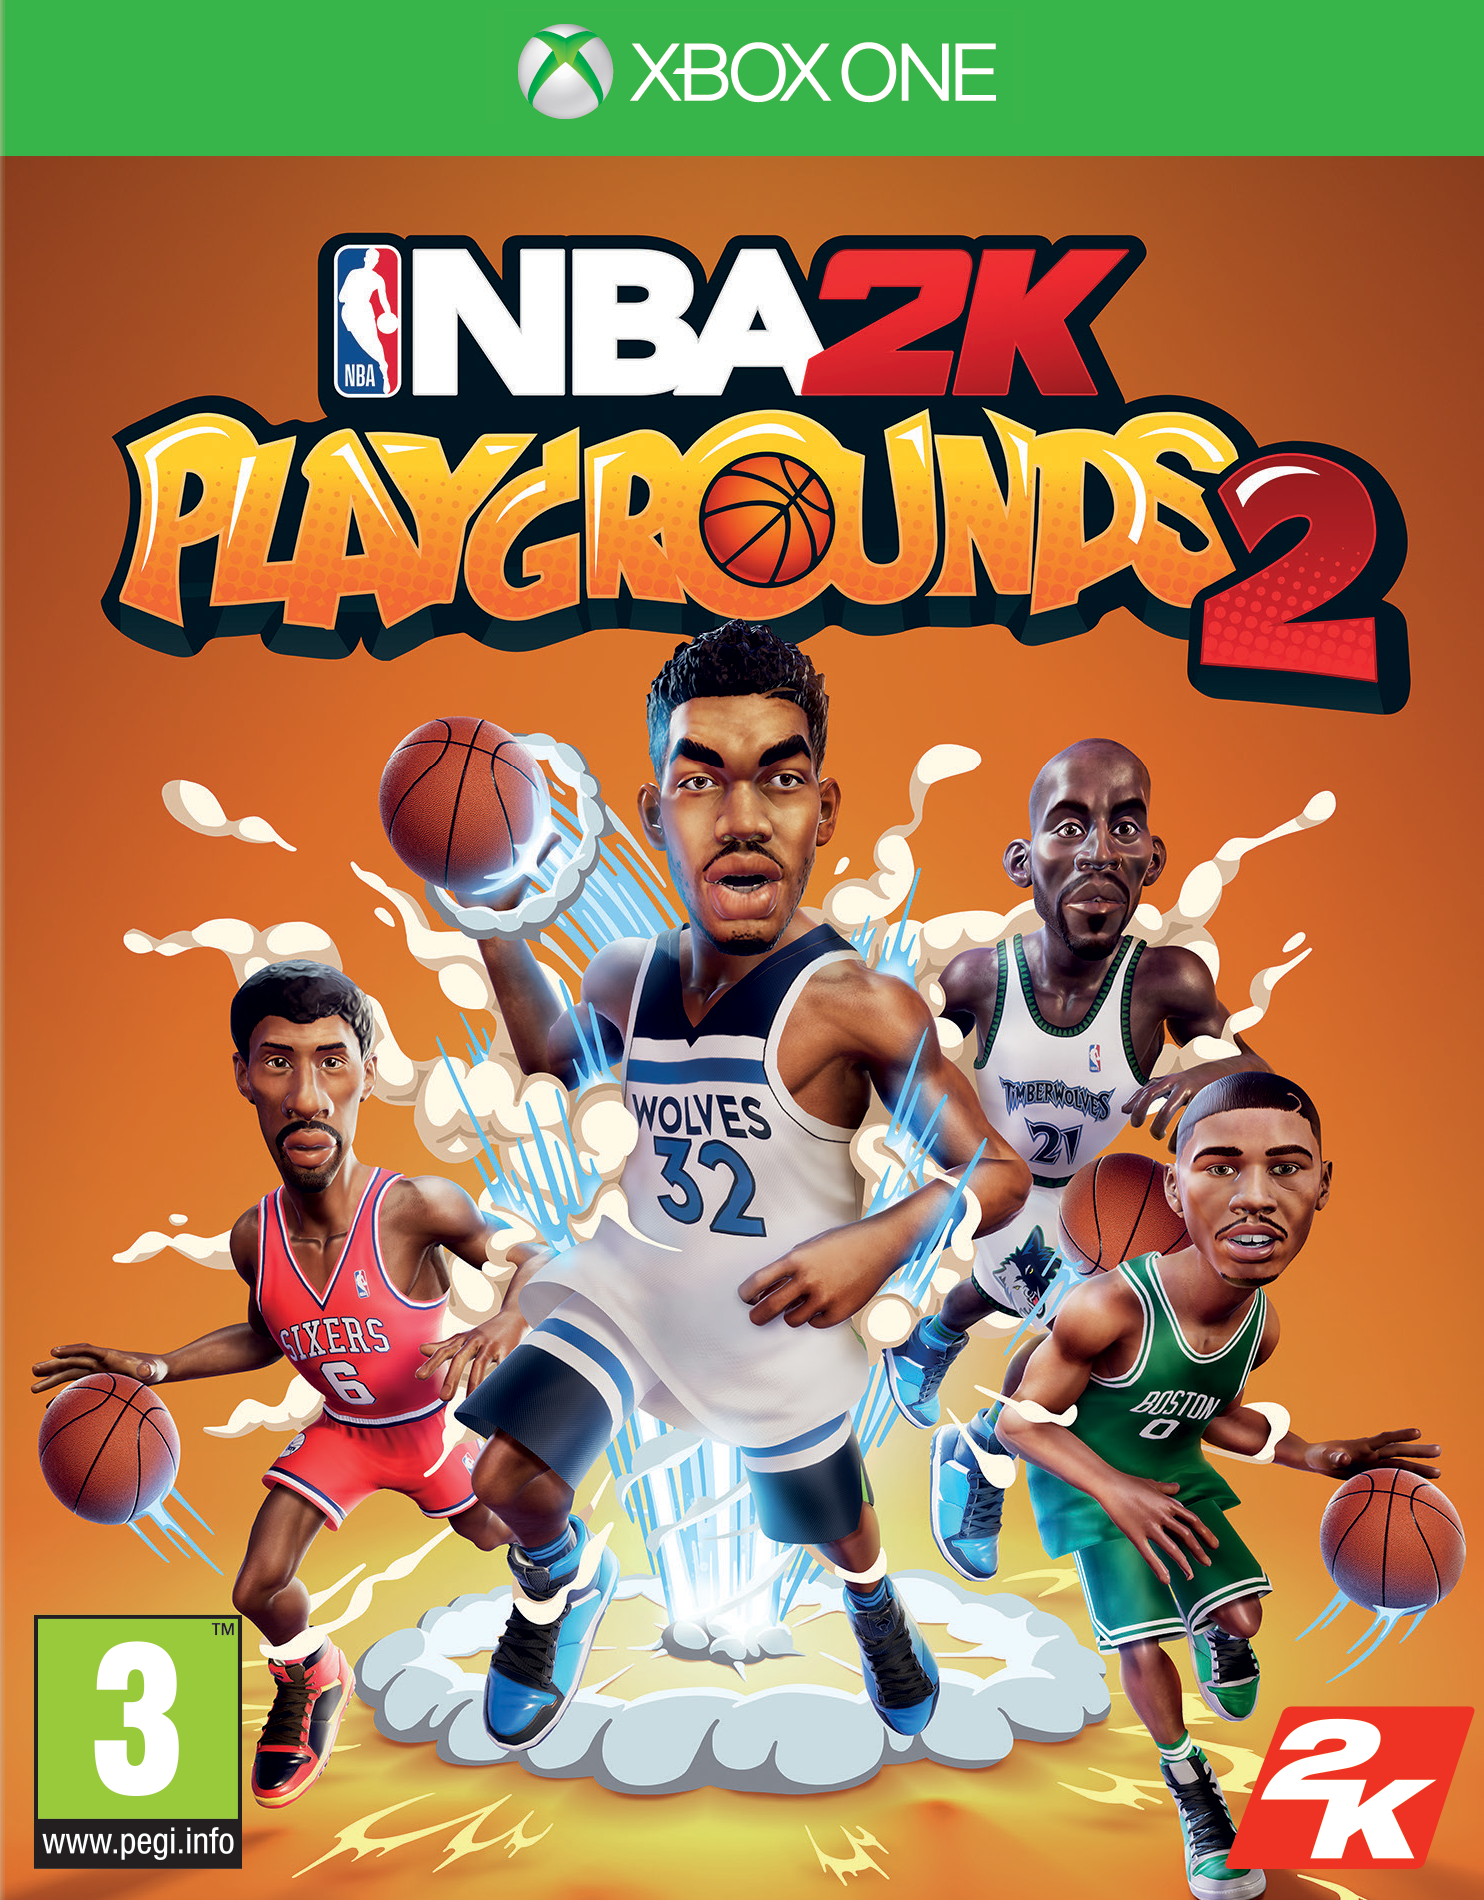 NBA 2K Playdrounds 2